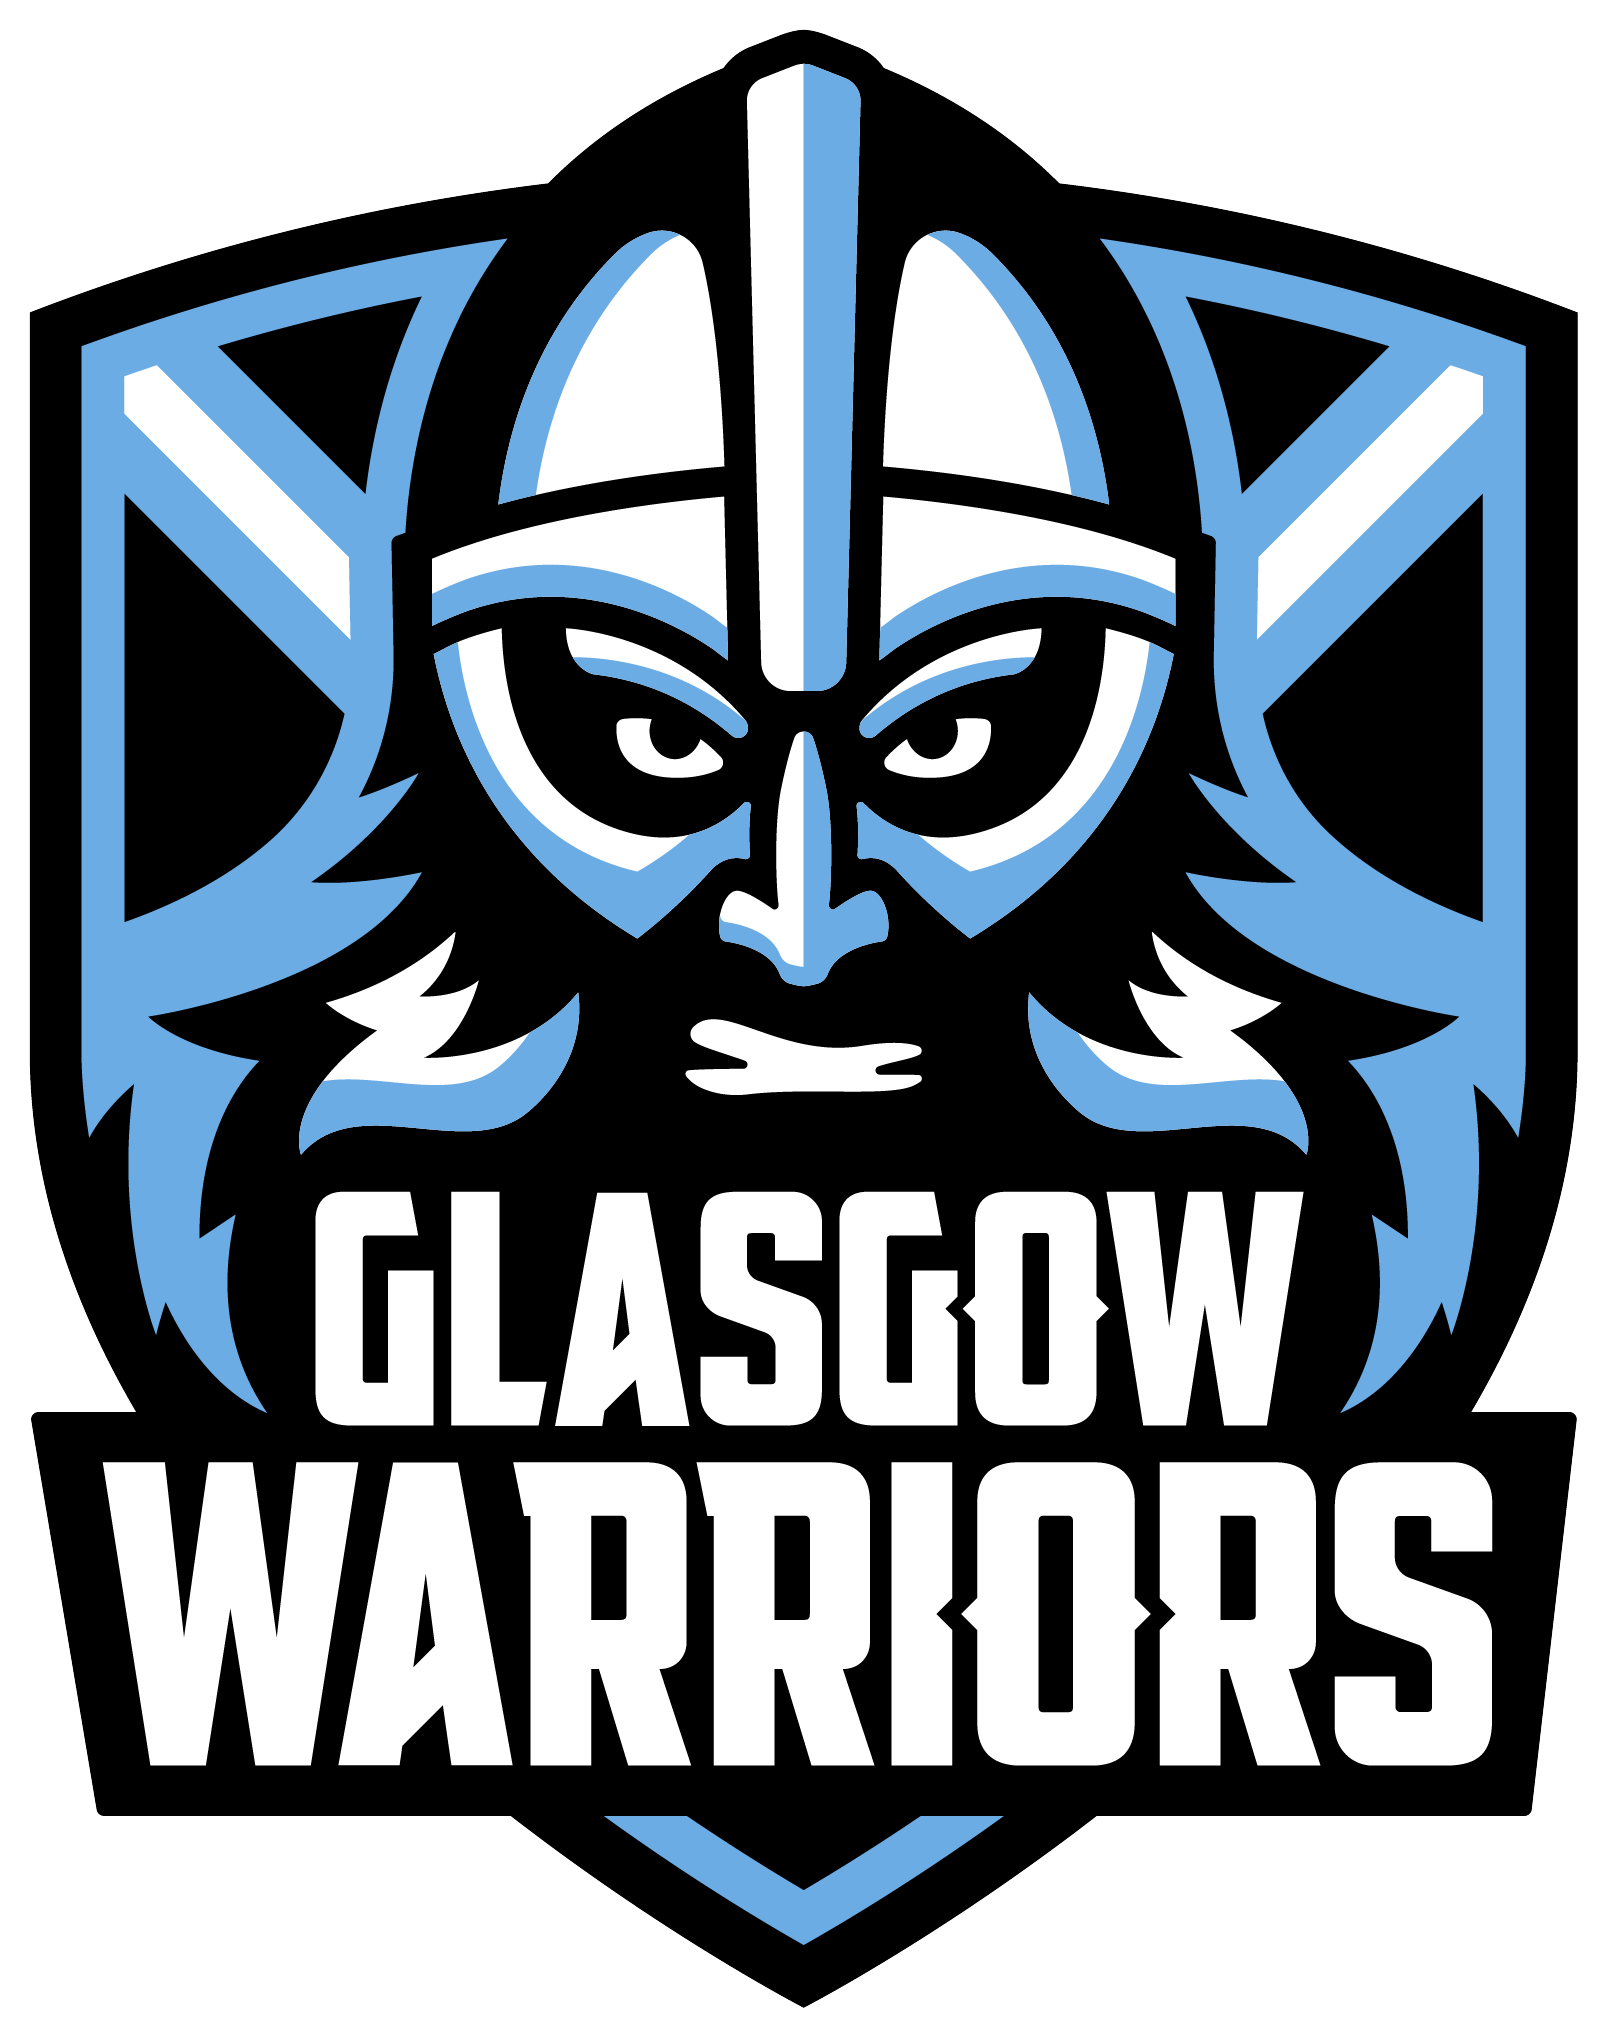 Learn more about the Glasgow Warriors Professional Rugby Team